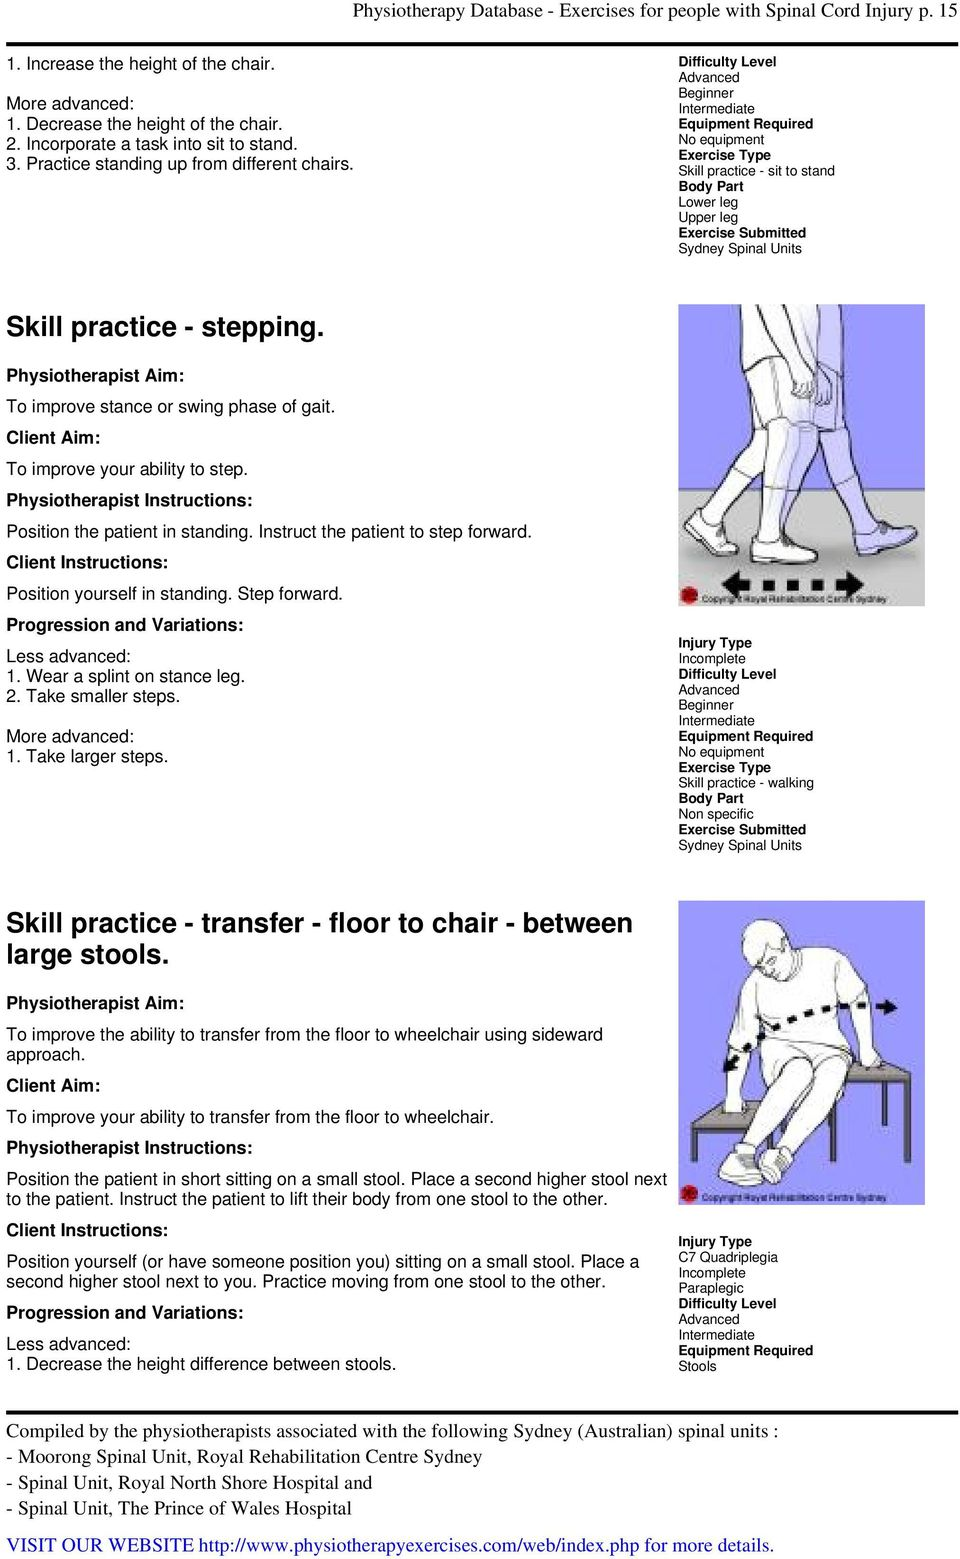 Position the patient in standing. Instruct the patient to step forward. Position yourself in standing. Step forward. 1. Wear a splint on stance leg. 2. Take smaller steps. 1. Take larger steps.